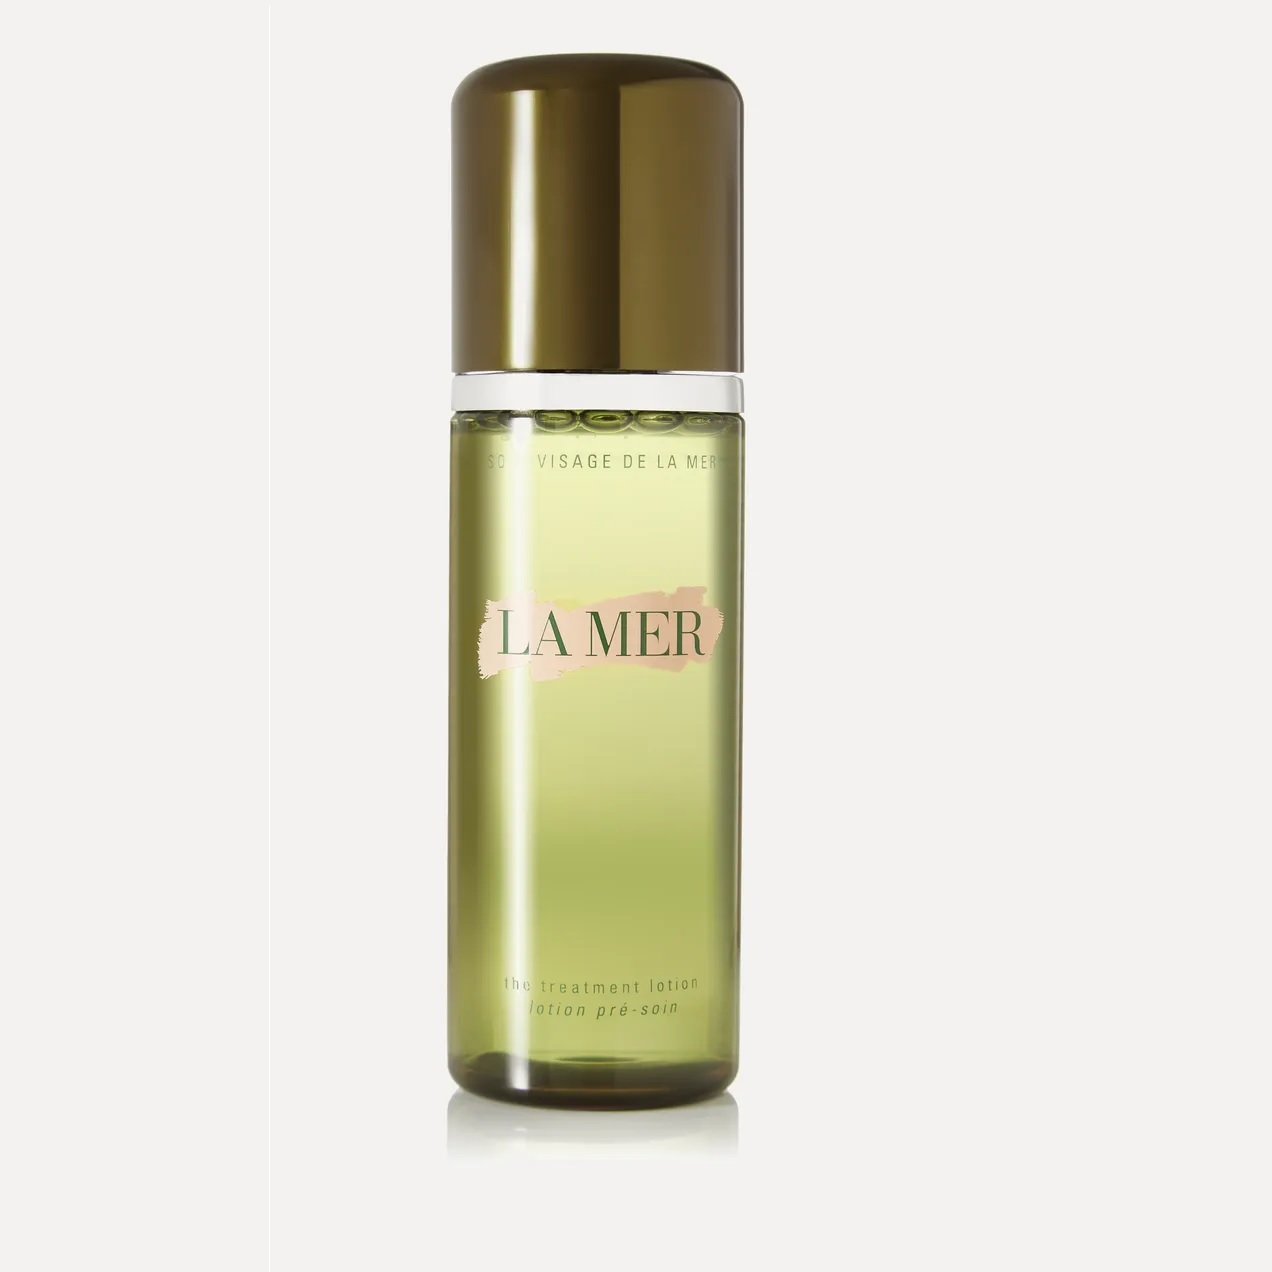 NET-A-PORTER: 15% OFF LAMER The Treatment Lotion